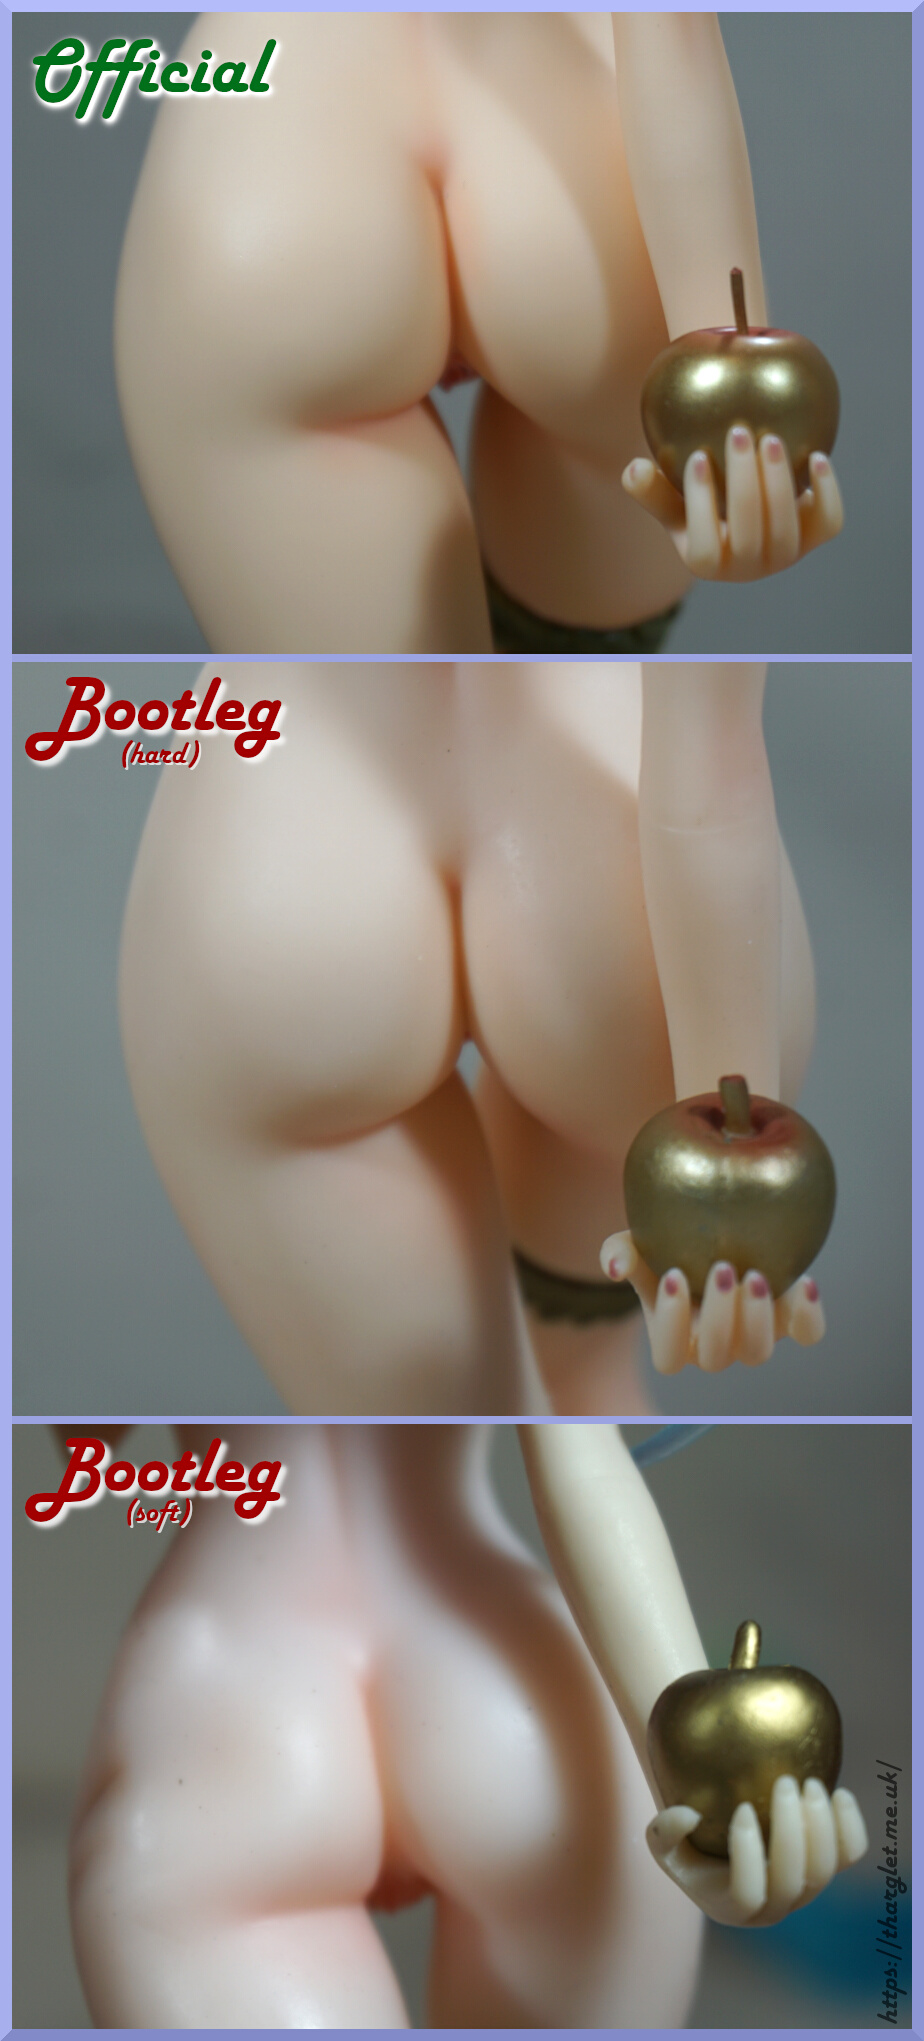 https://i.ibb.co/brTThqY/bum-and-apple.jpg